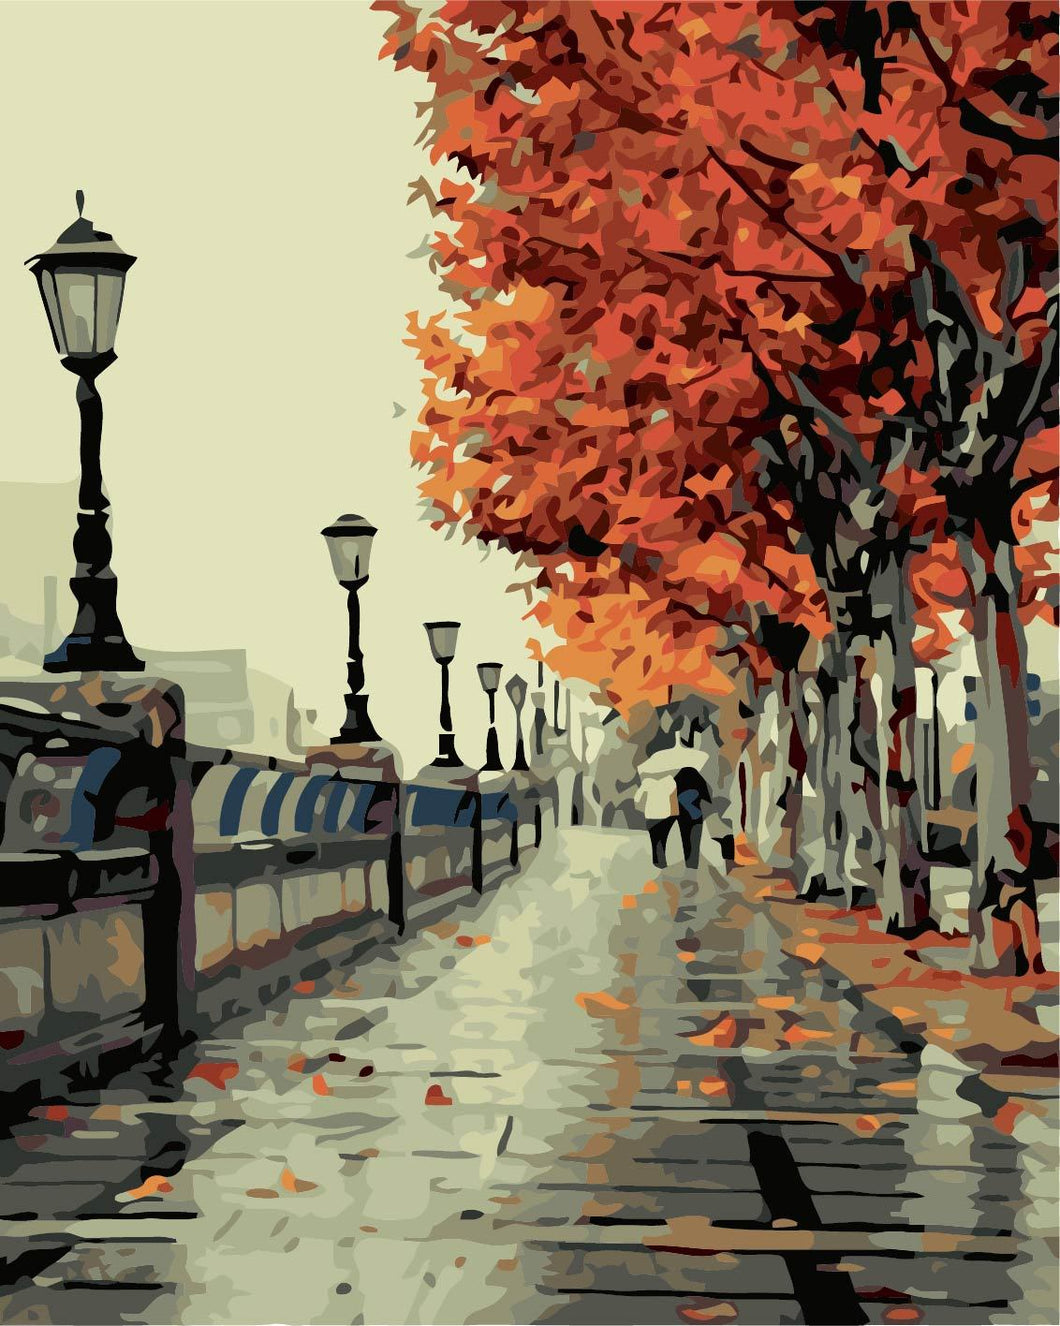 DIY Painting By Numbers - Autumn street